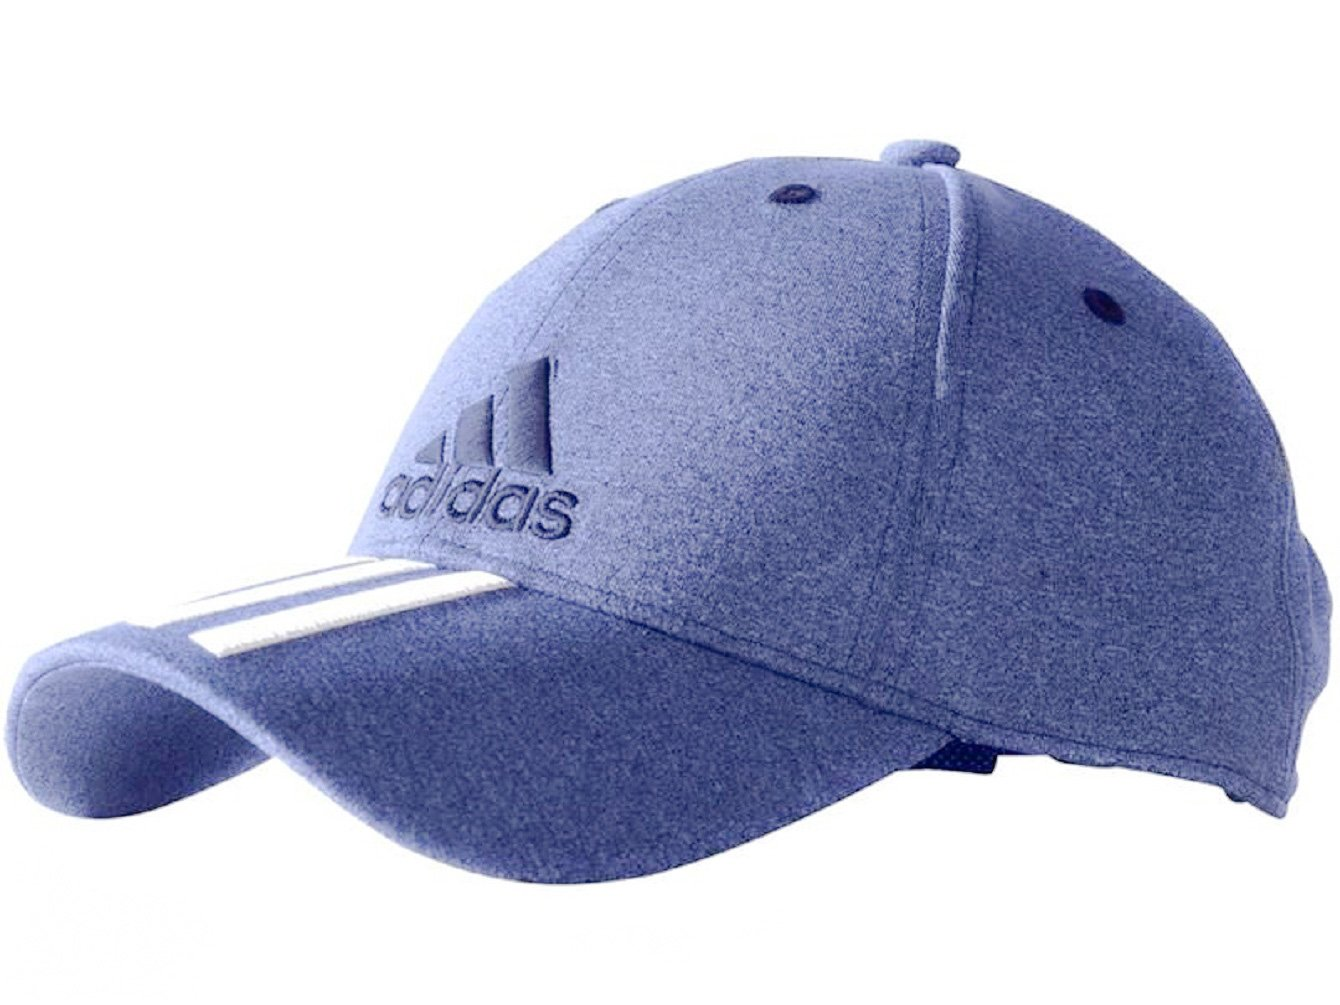 e04fe673bfb adidas Mens Light Blue Adjustable Iconic 3 Stripes Embroidered Baseball 3  Stripe Cap  Amazon.co.uk  Sports   Outdoors